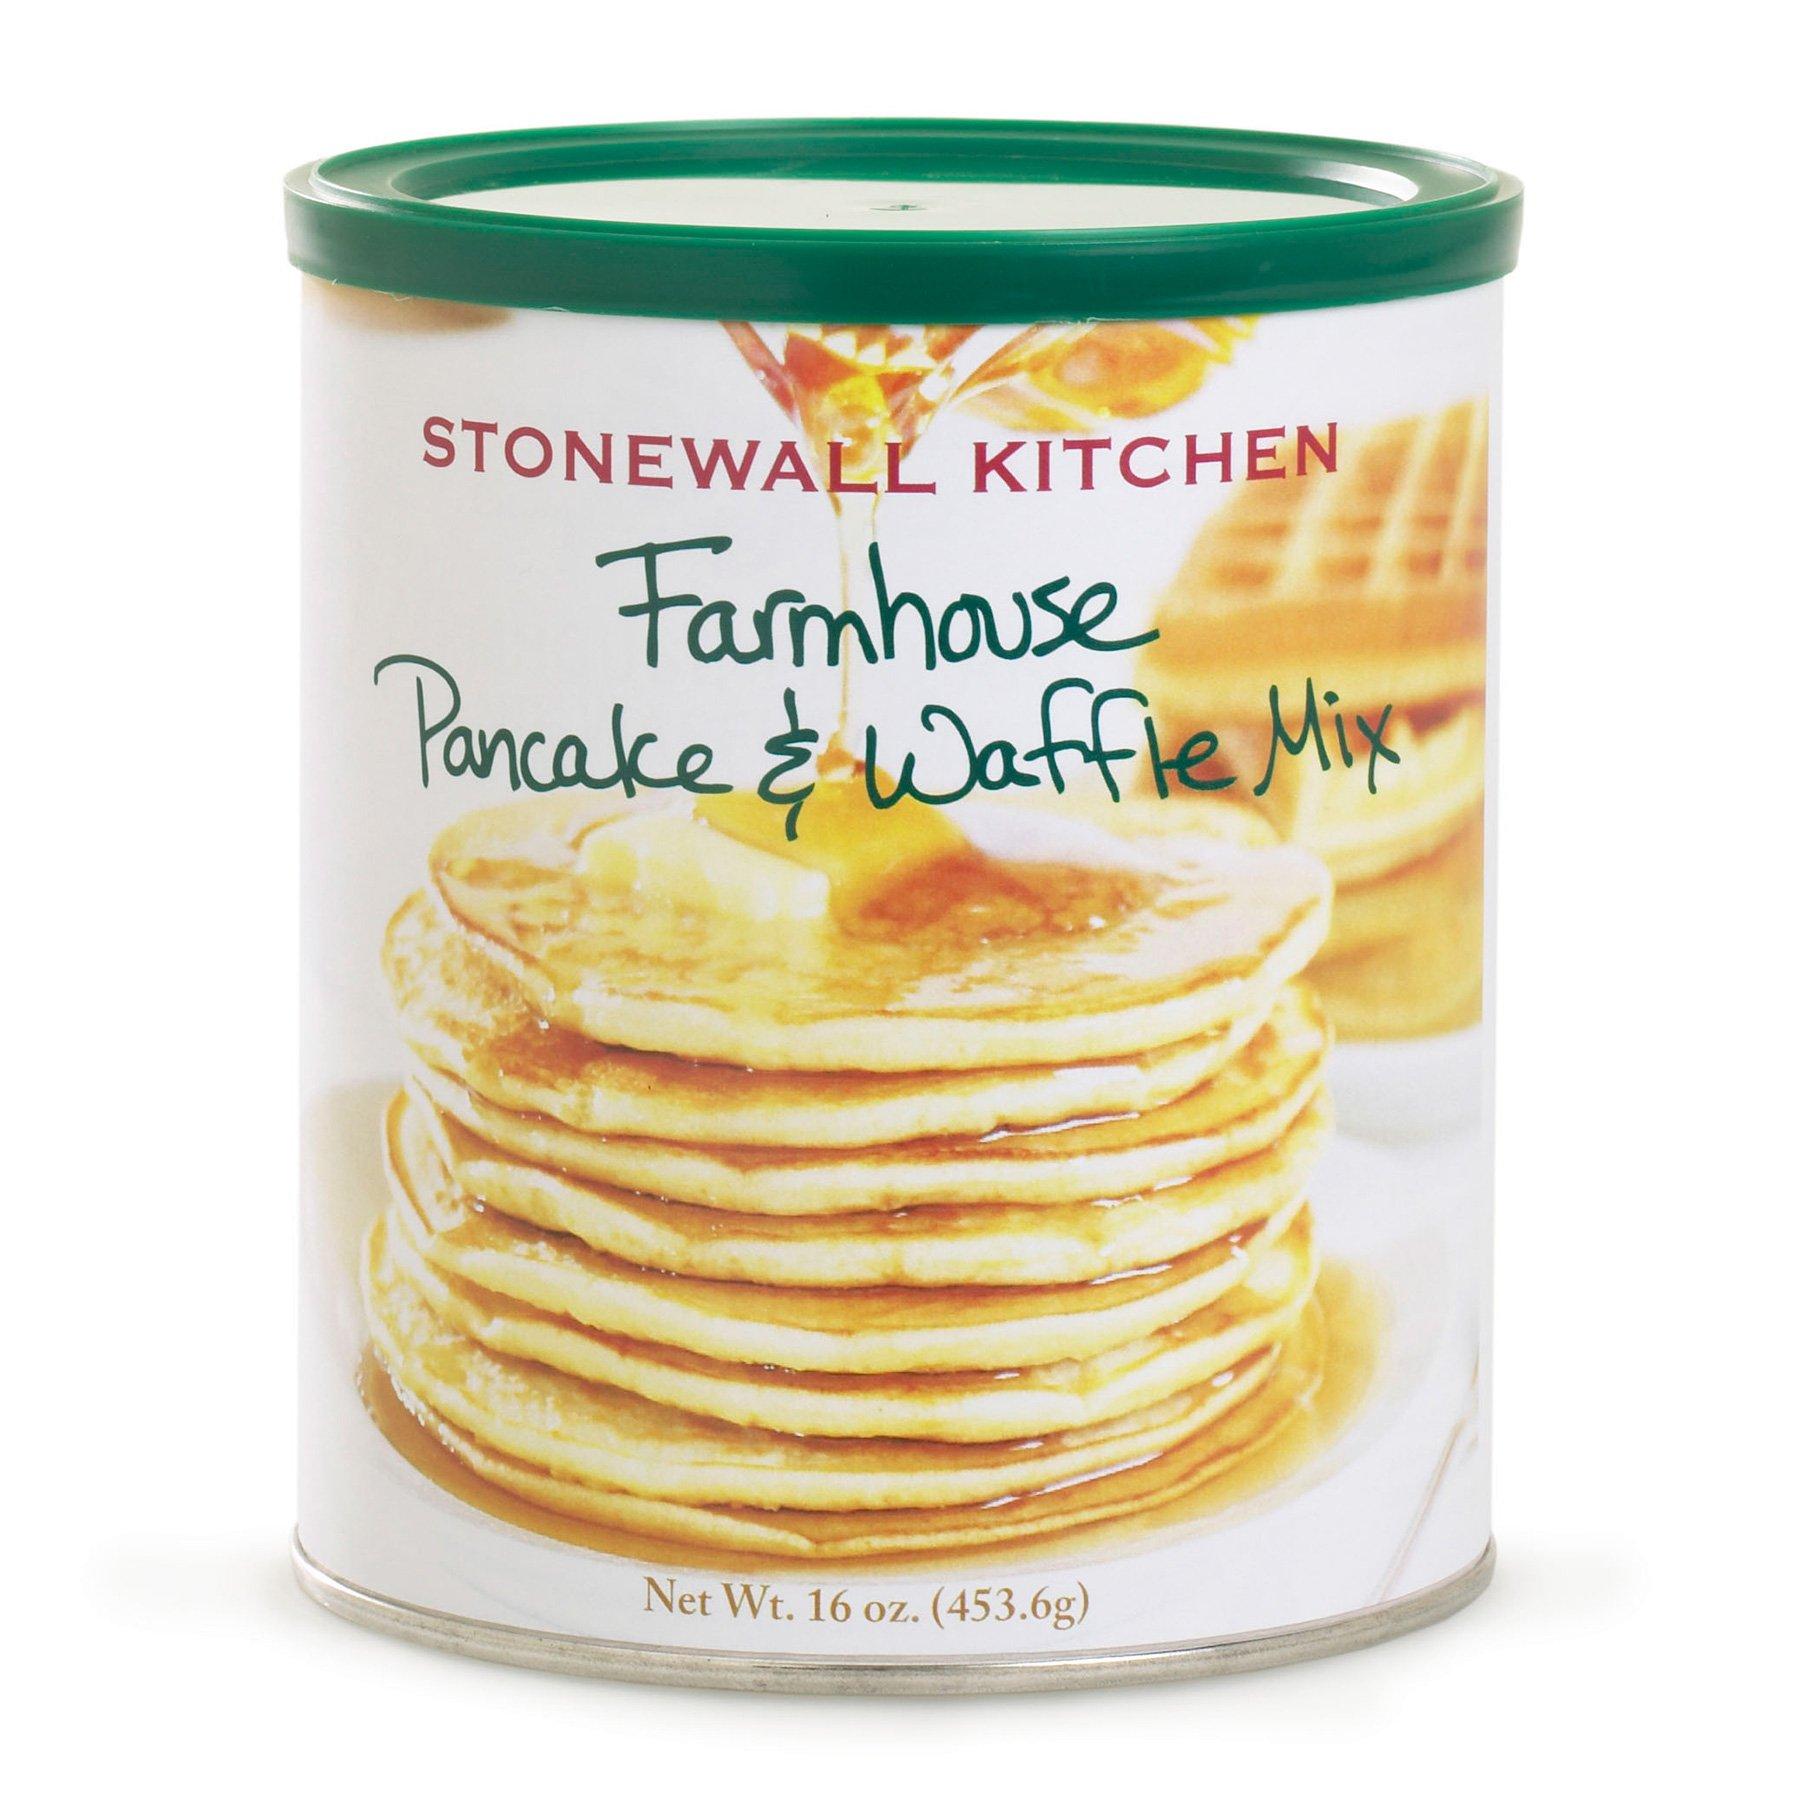 Stonewall Kitchen Best of the Best Gift Collection ( 21 Piece Gift Basket) by Stonewall Kitchen (Image #4)